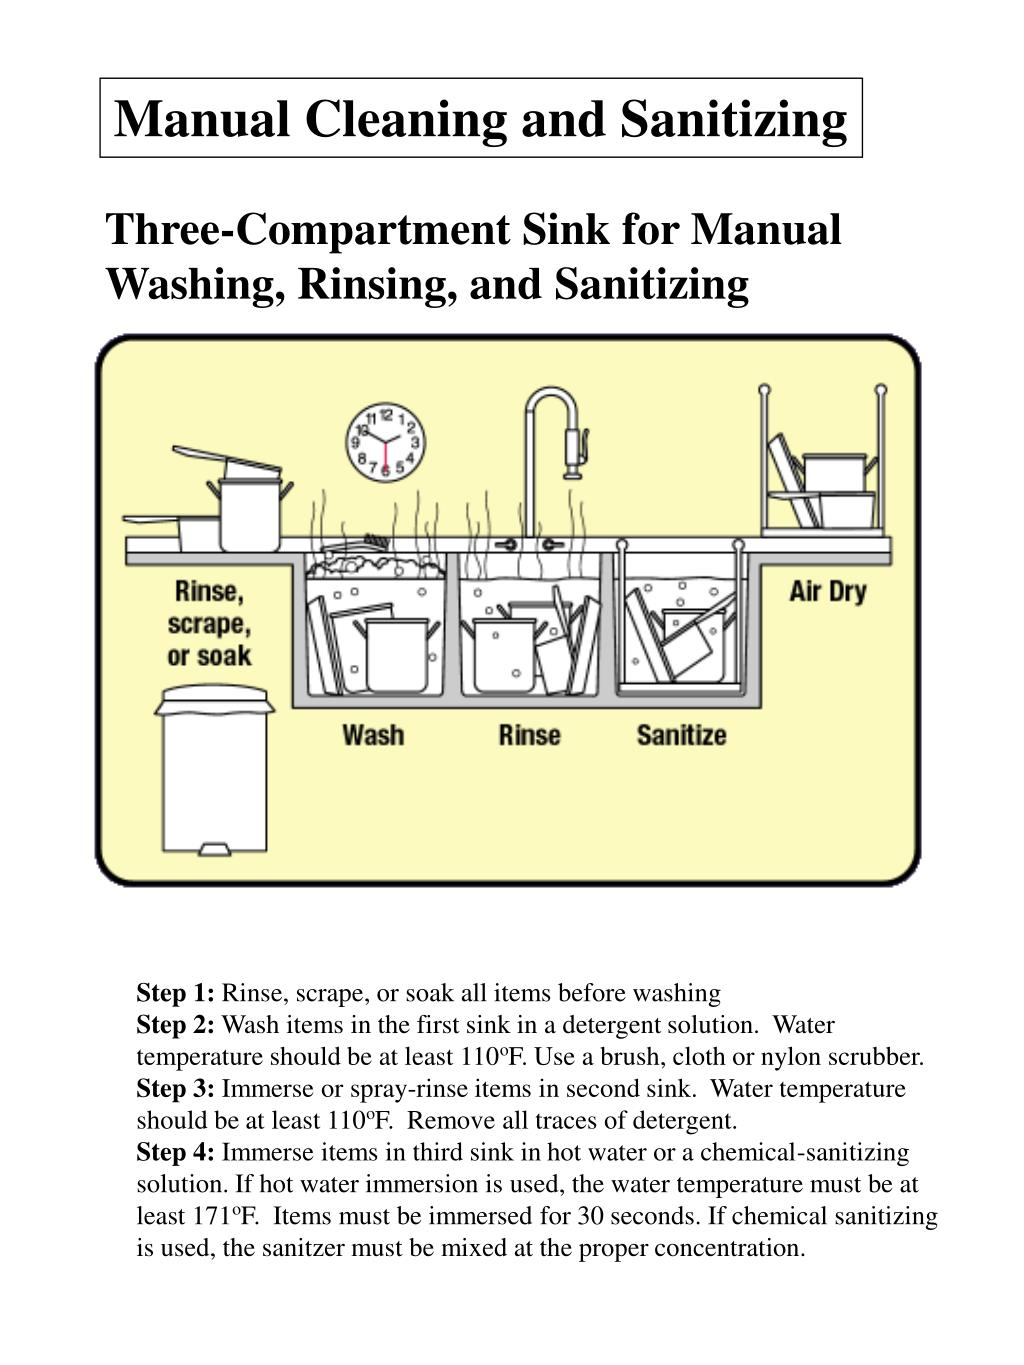 Manual Cleaning and Sanitizing